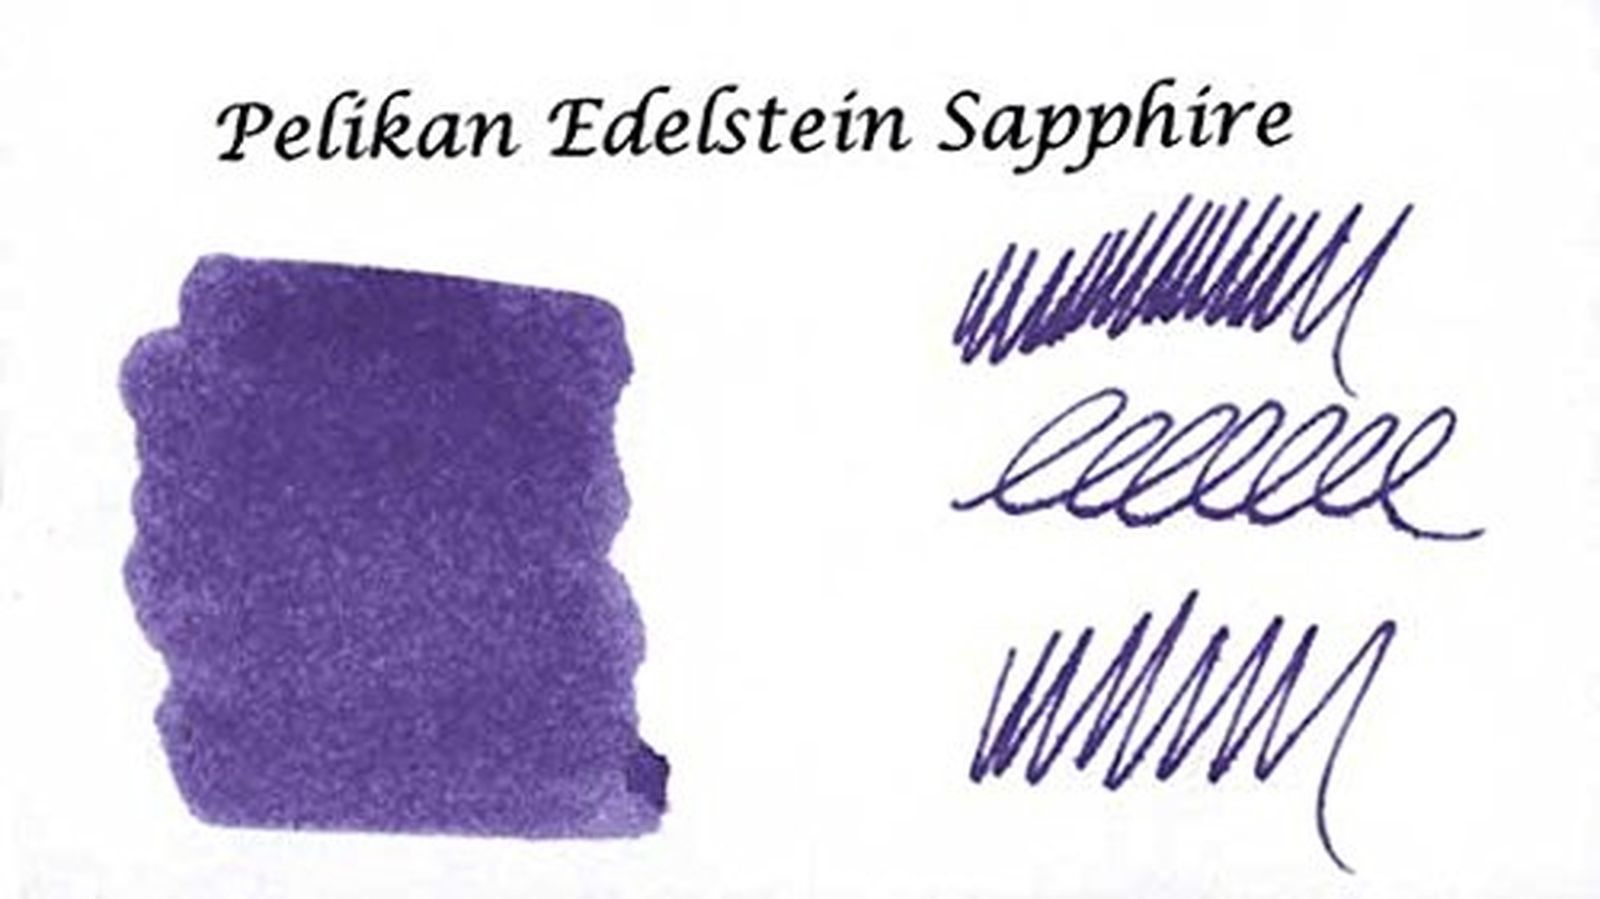 Pelikan Edelstein Bottled Ink for Fountain Pens, Sapphire, 50ml, 1  Bottle